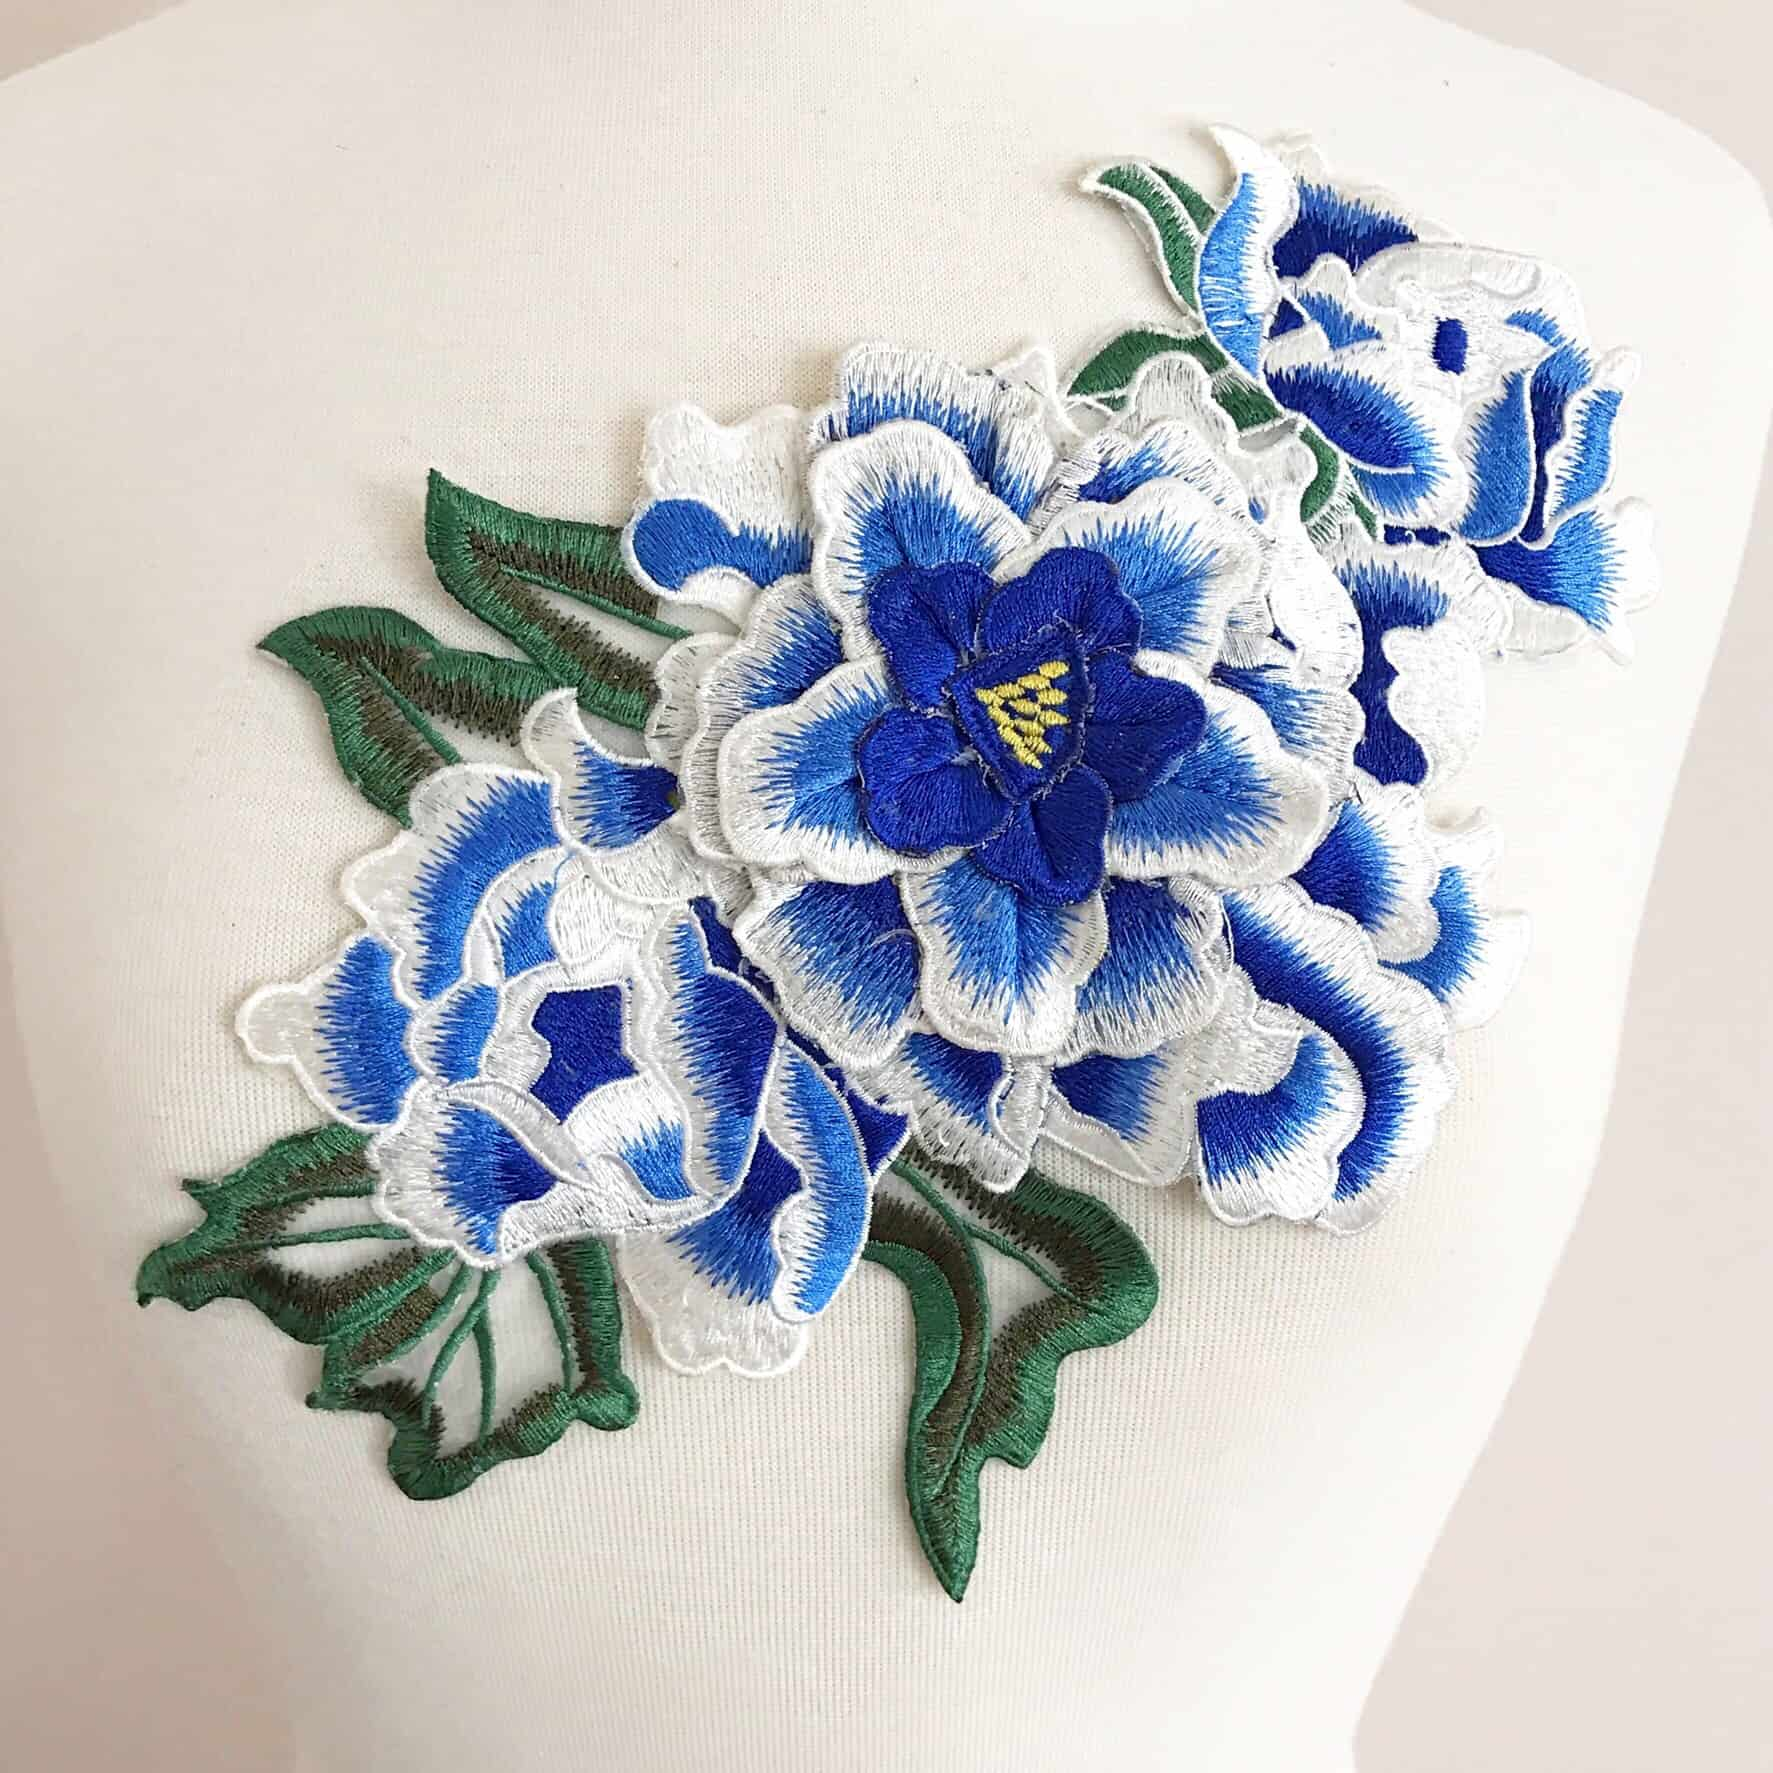 Embroidered 3D Blue and White Floral Applique